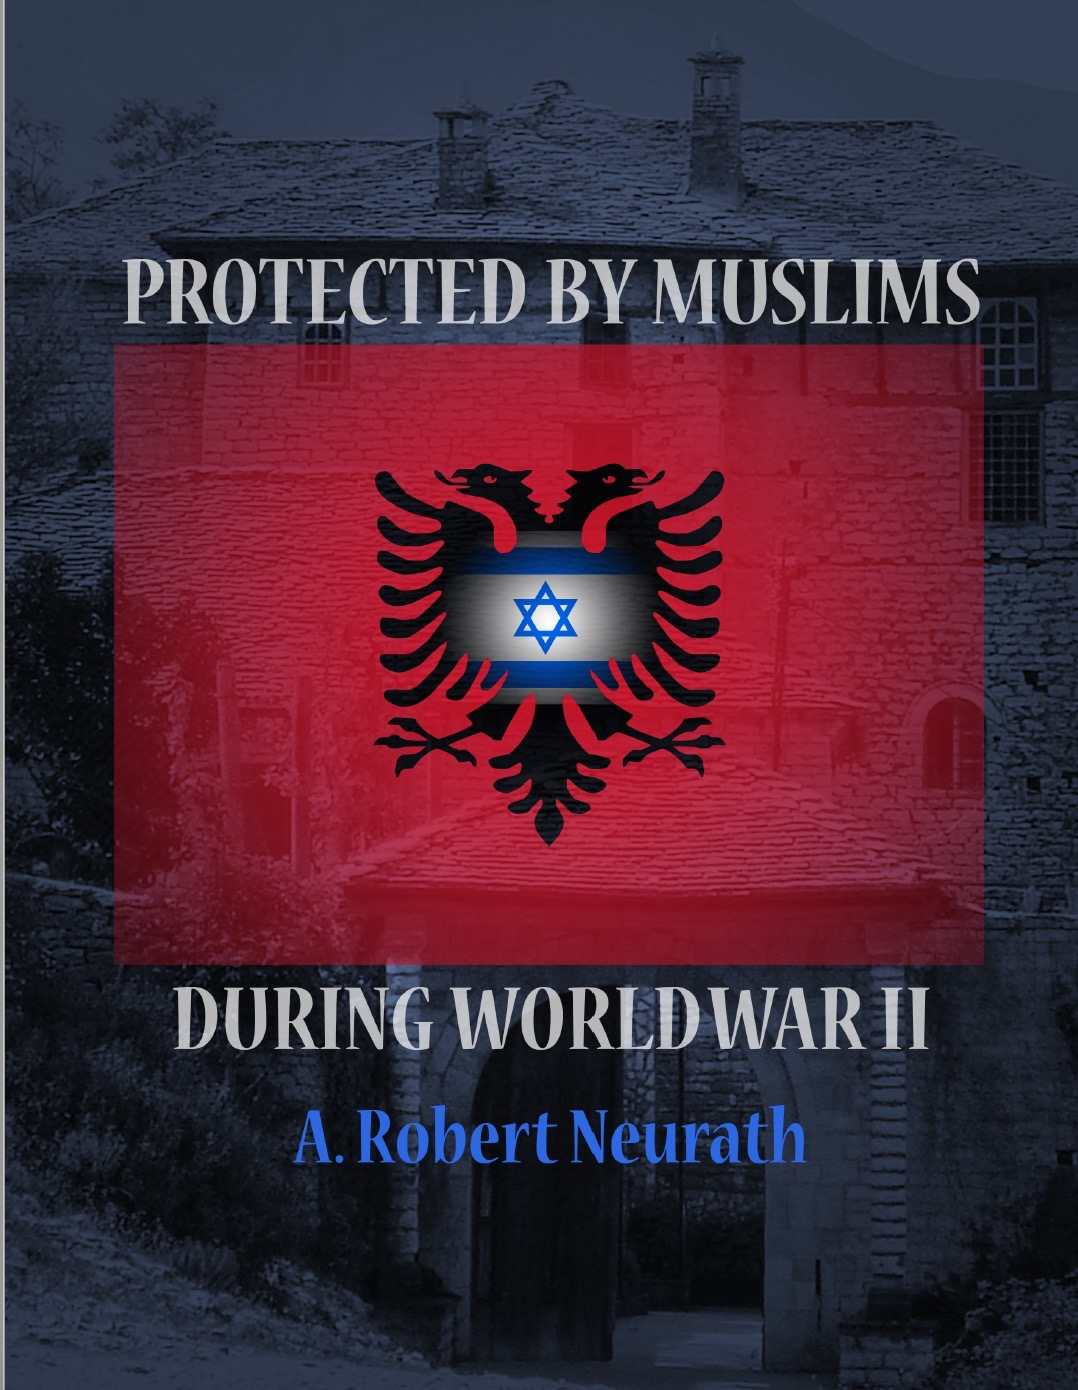 PROTECTED BY MUSLIMS DURING WORLD WAR II